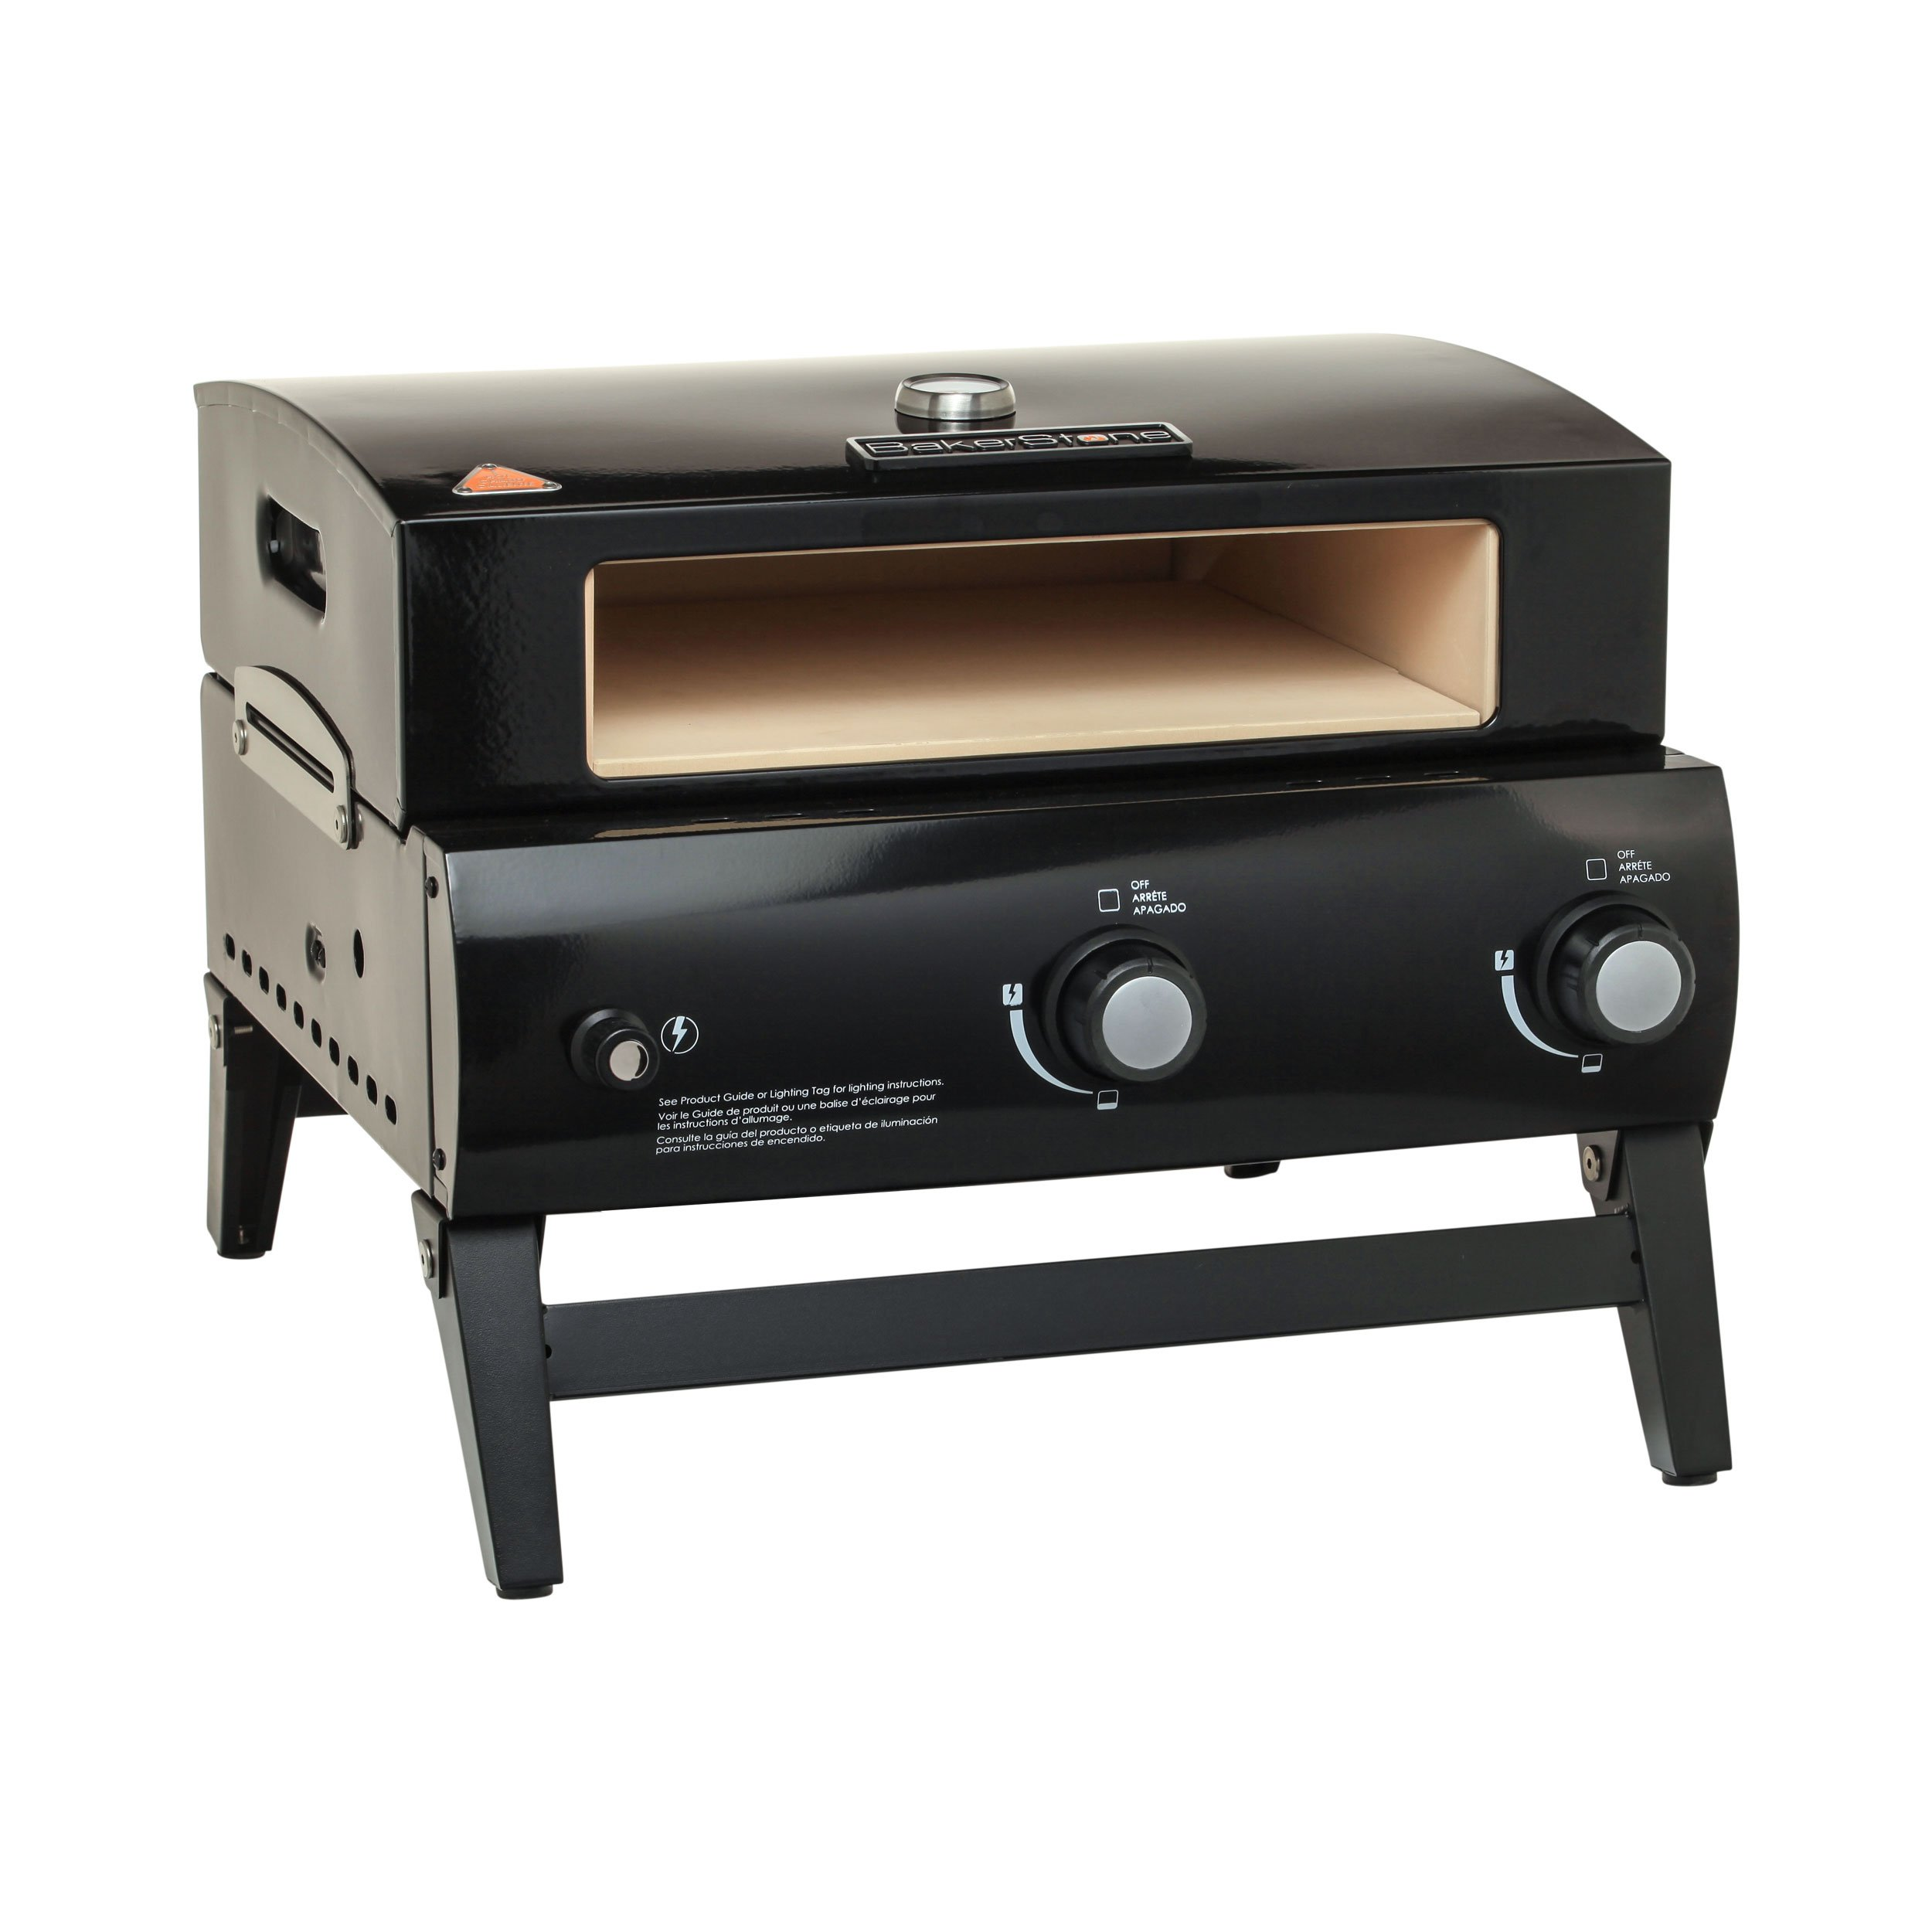 BakerStone O-AJLXX-O-000 Portable Gas Pizza Oven, Black by BakerStone (Image #1)